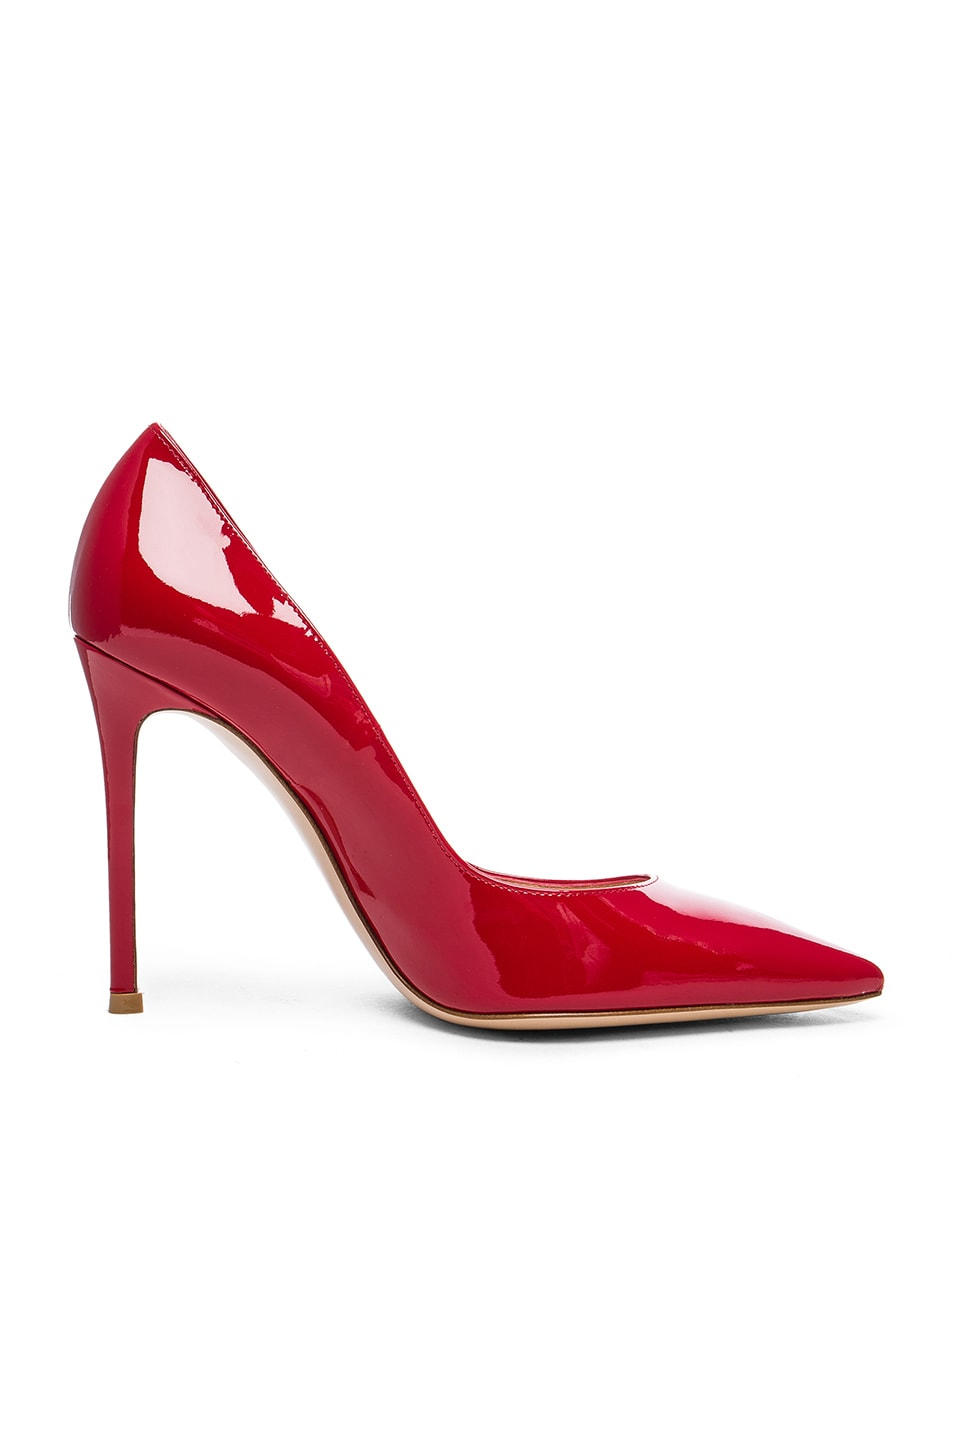 Image 1 of Gianvito Rossi Patent Leather Gianvito Pumps in Tabasco Red